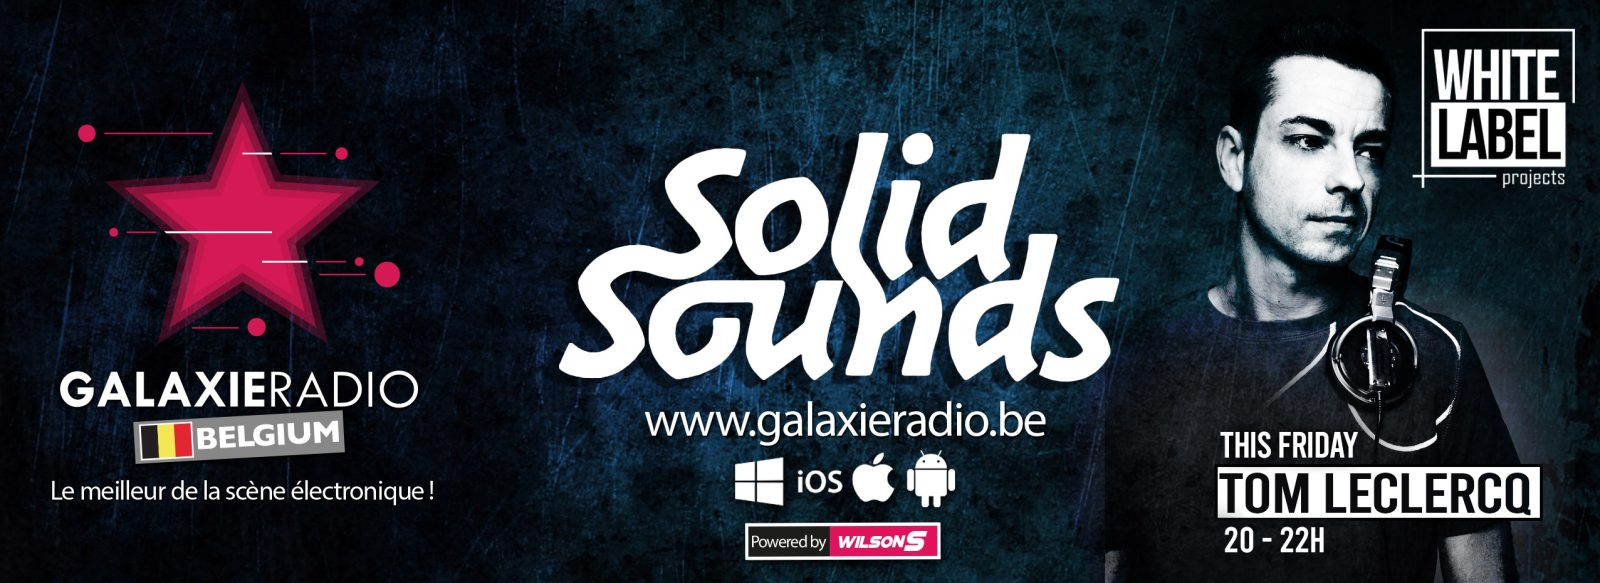 solid sounds banner (tom leclercq)